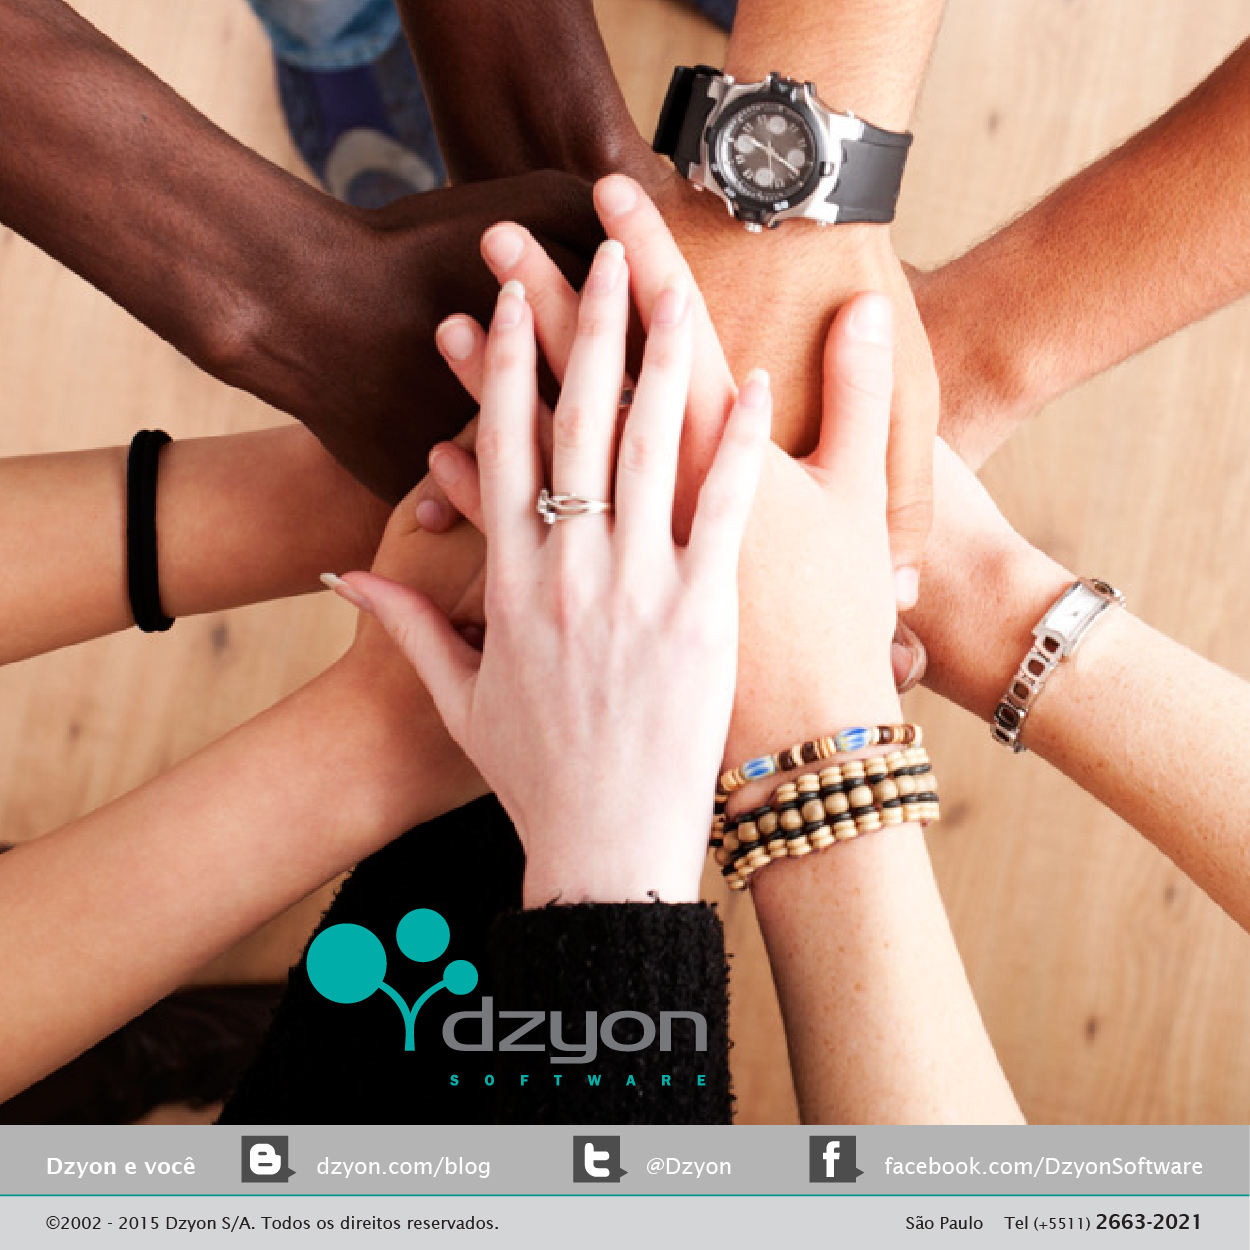 Dzyon_Post_Teamwork_rev1-02